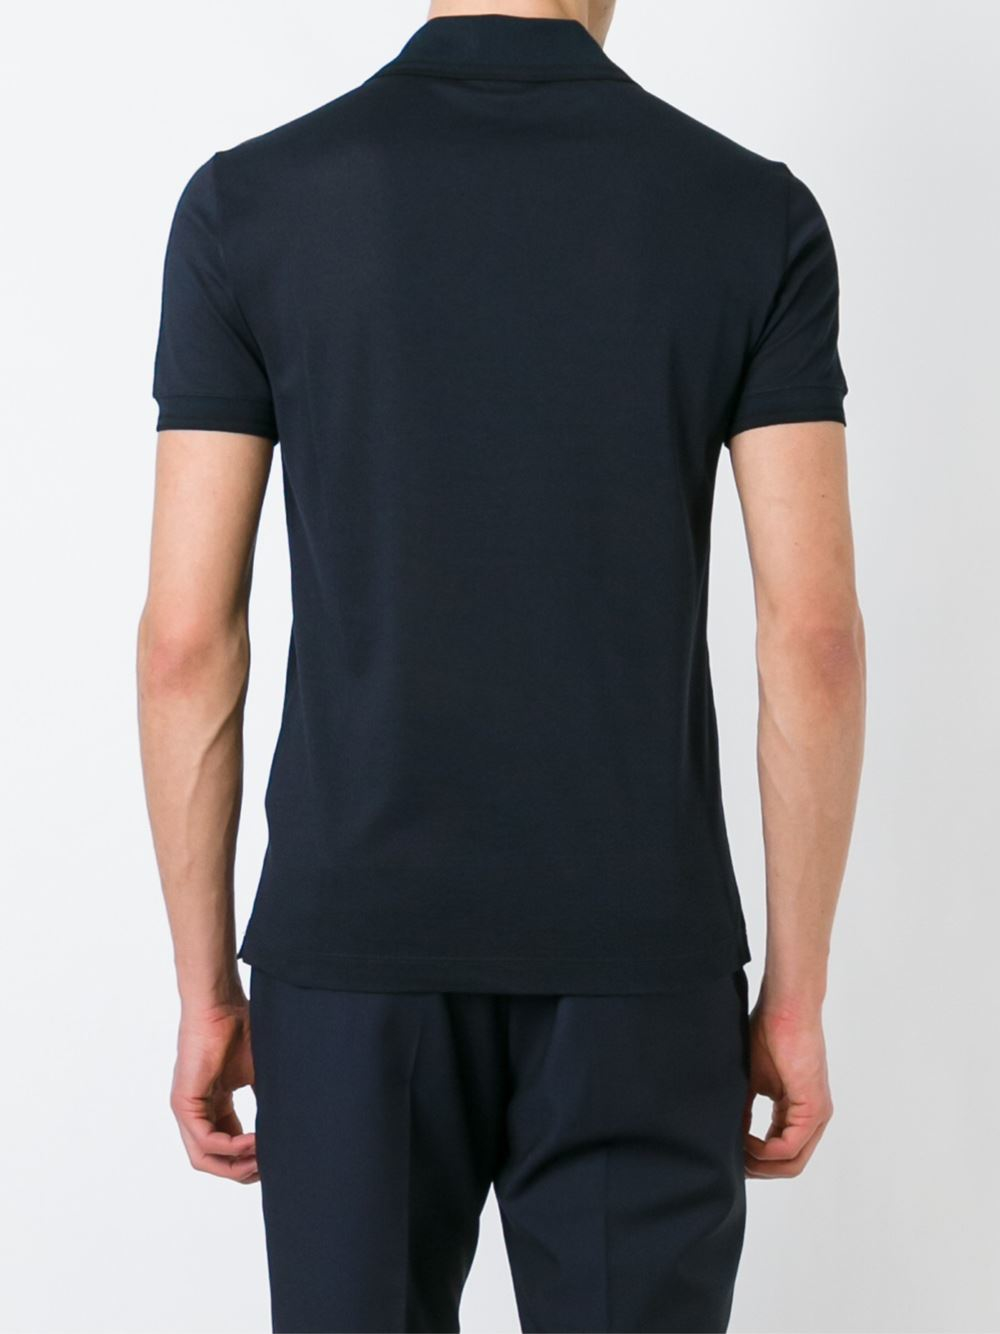 Giorgio armani chest pocket polo shirt in black for men lyst for Men s polo shirts with chest pocket